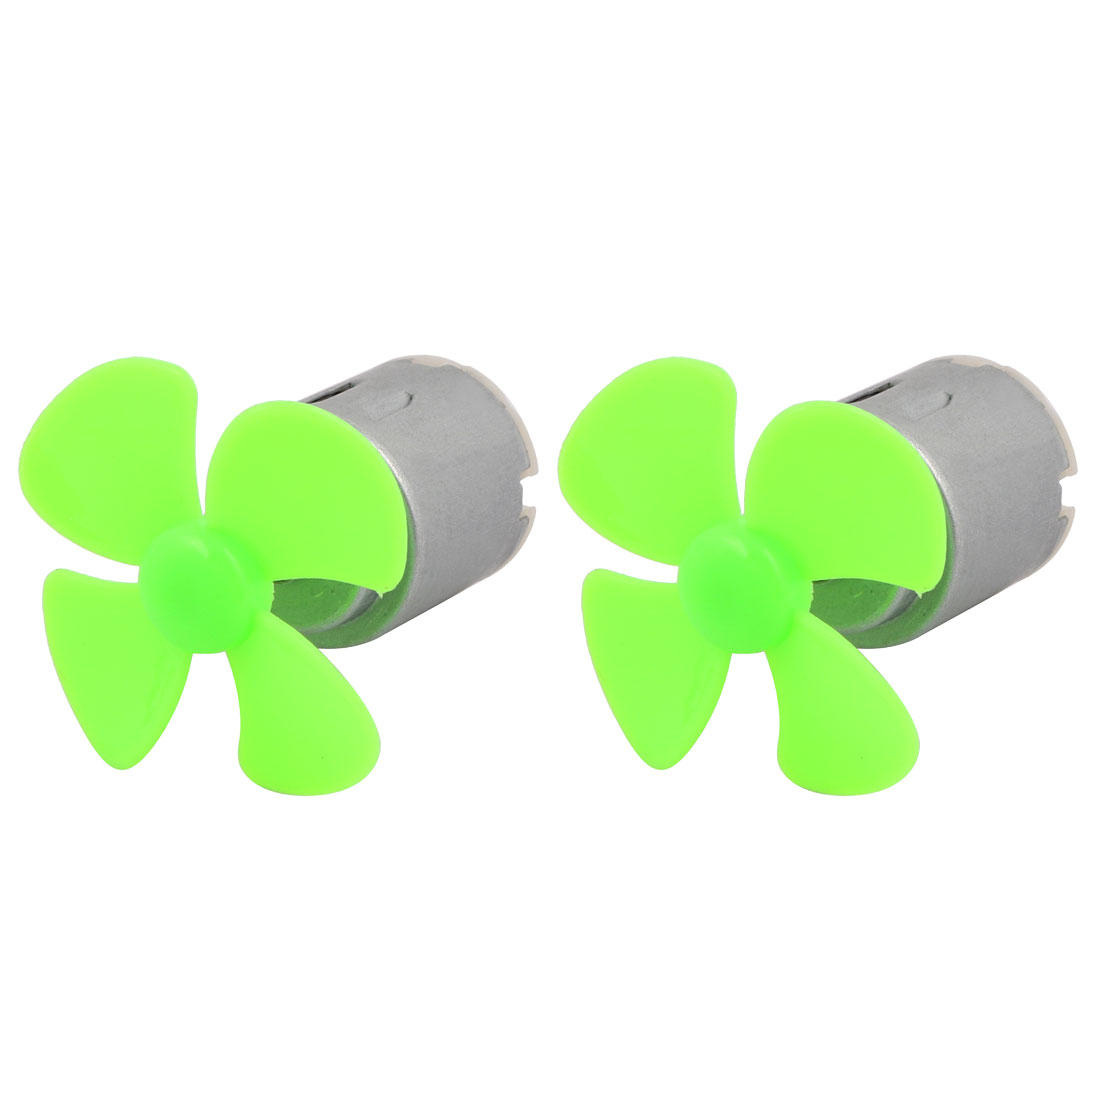 2pcs DC 3V 0.13A 6600RPM Green Strong Force Motor 4 Vanes 40mm Dia Propeller for RC Aircraft